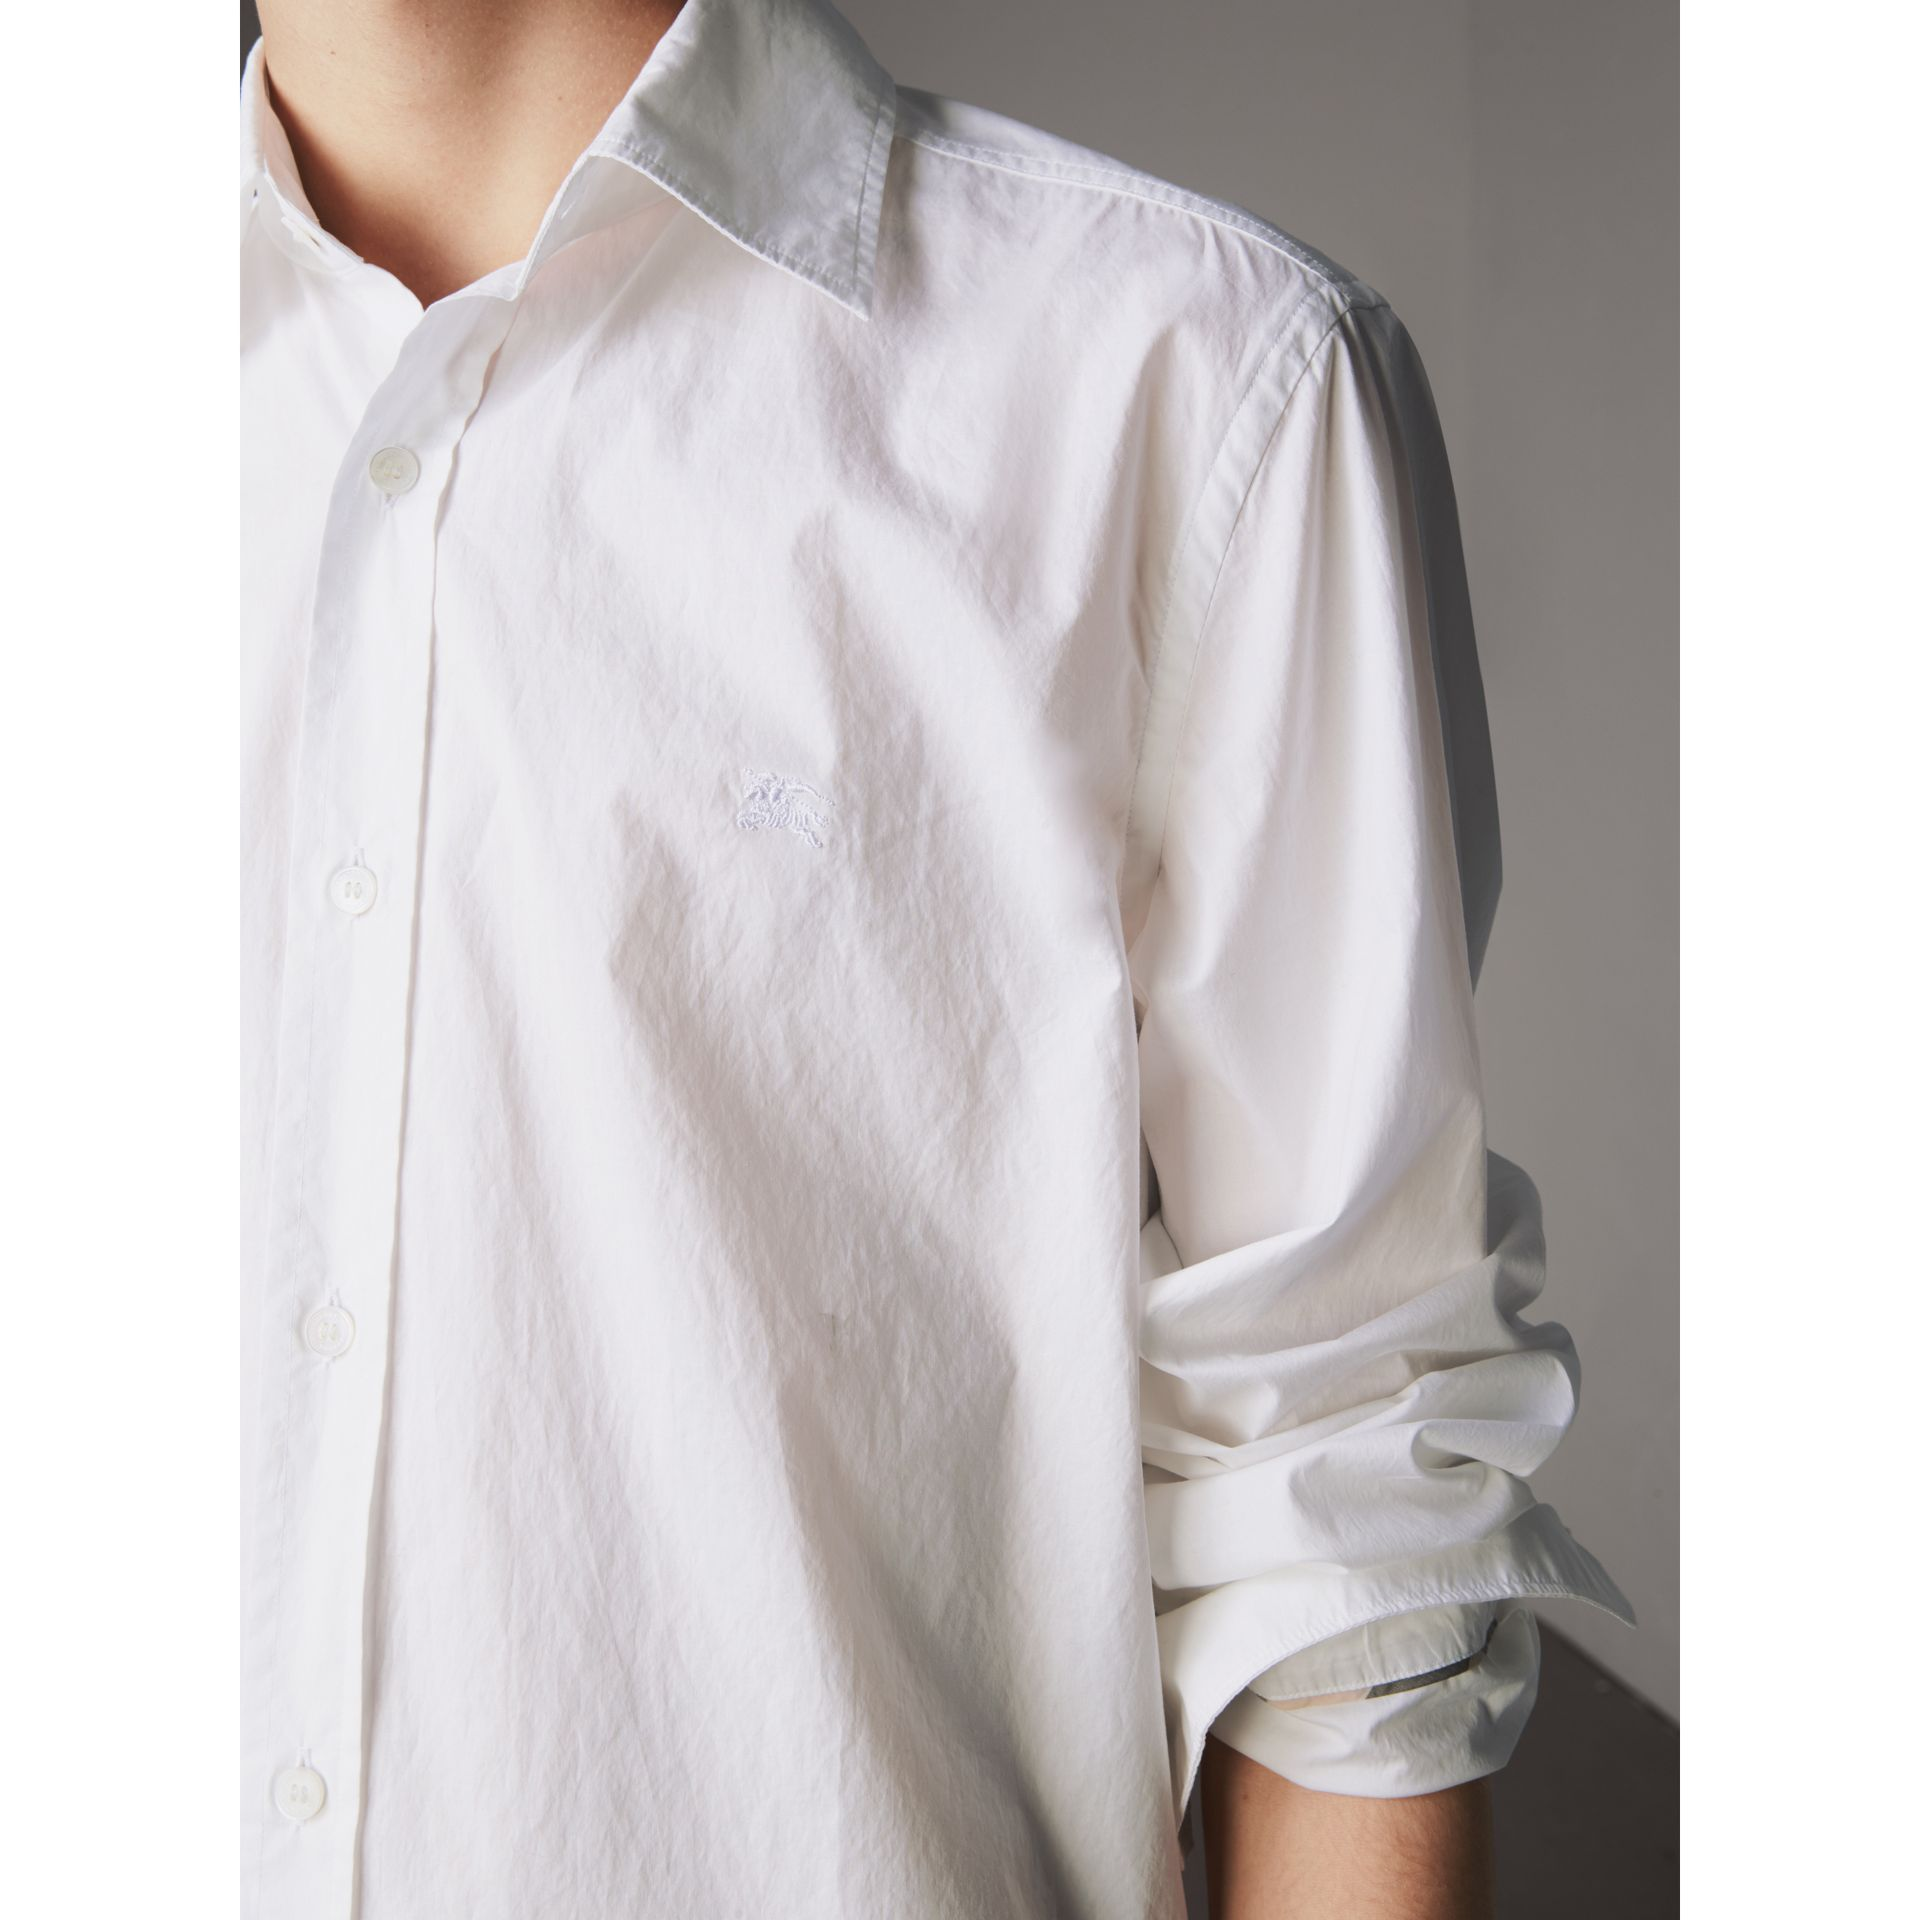 Japanese Cotton Poplin Shirt in White - Men | Burberry - gallery image 2